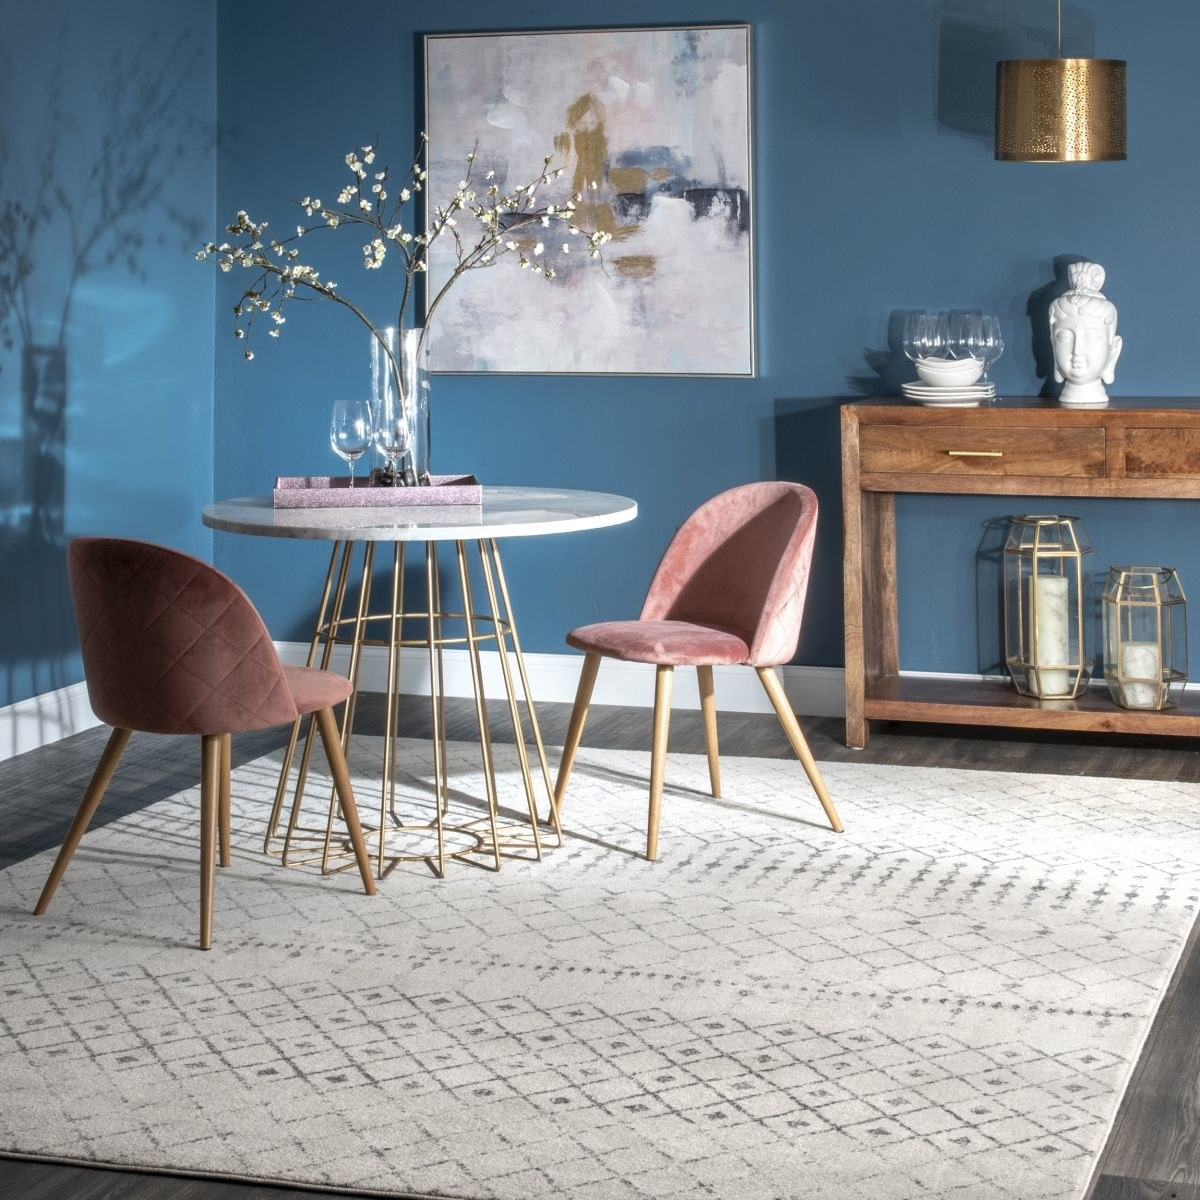 a white rug with a gray design throughout